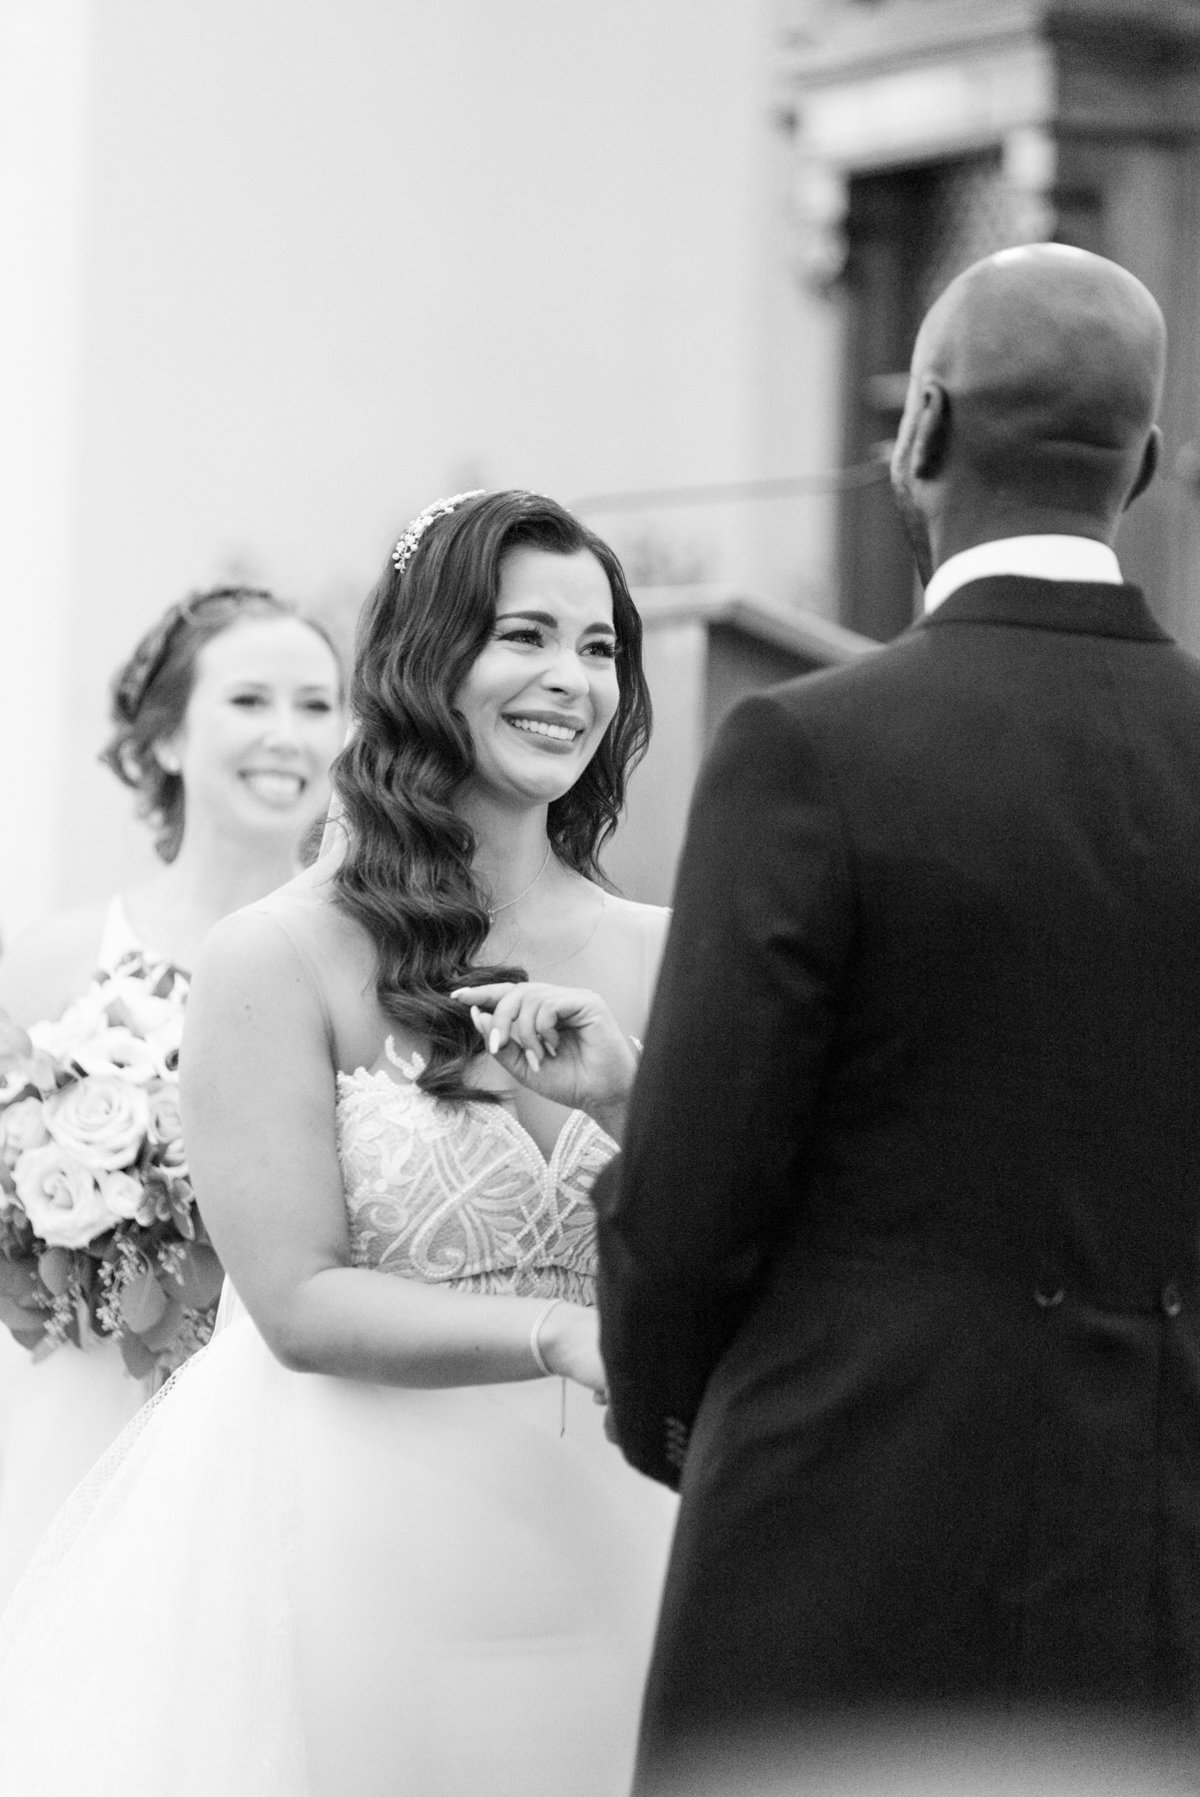 Bride looking at her groom during their vows at St. Andrew's Church in Thunder Bay